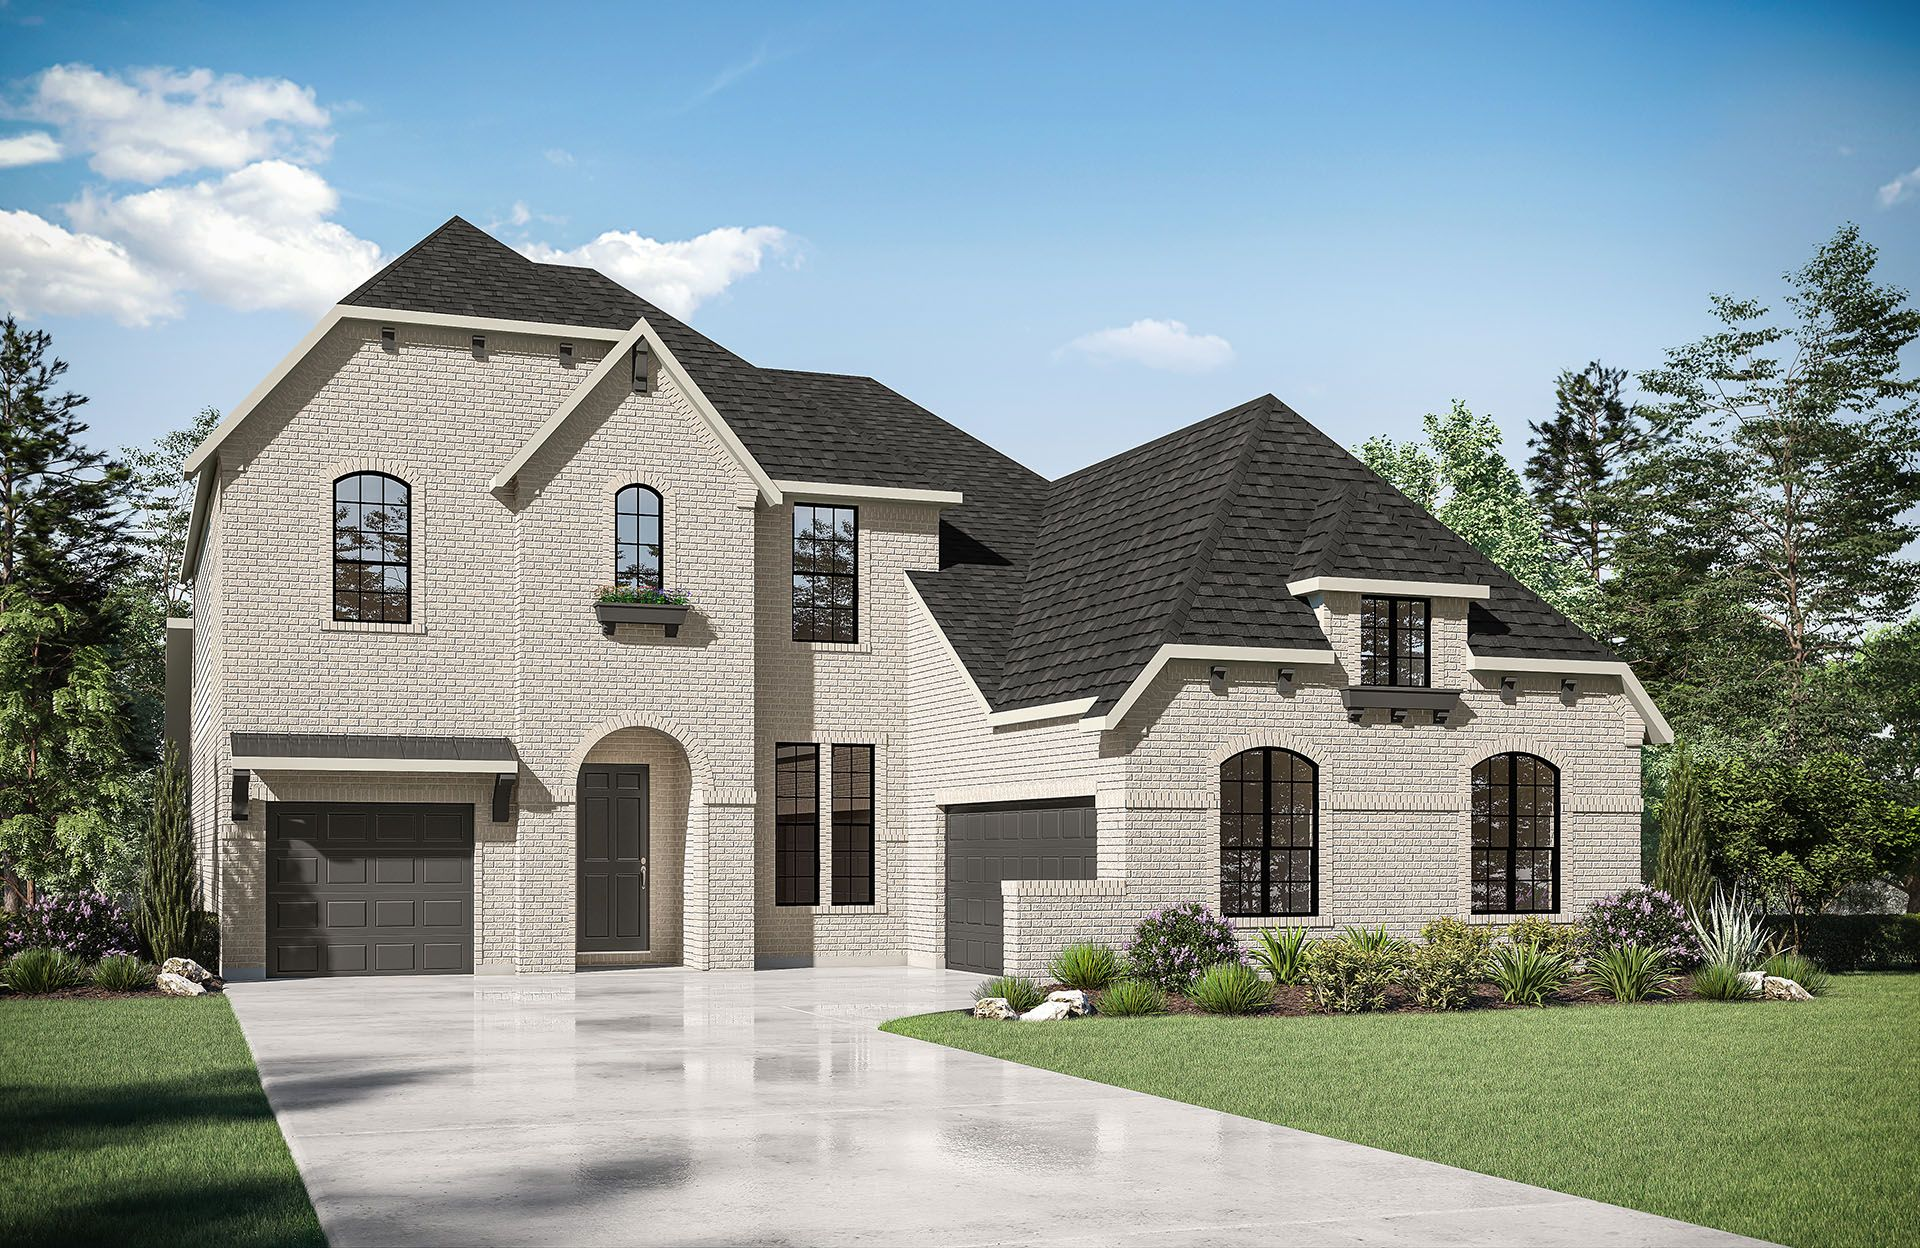 Single Family for Active at Deerfield J 1003 Heather Falls Drive Rockwall, Texas 75087 United States